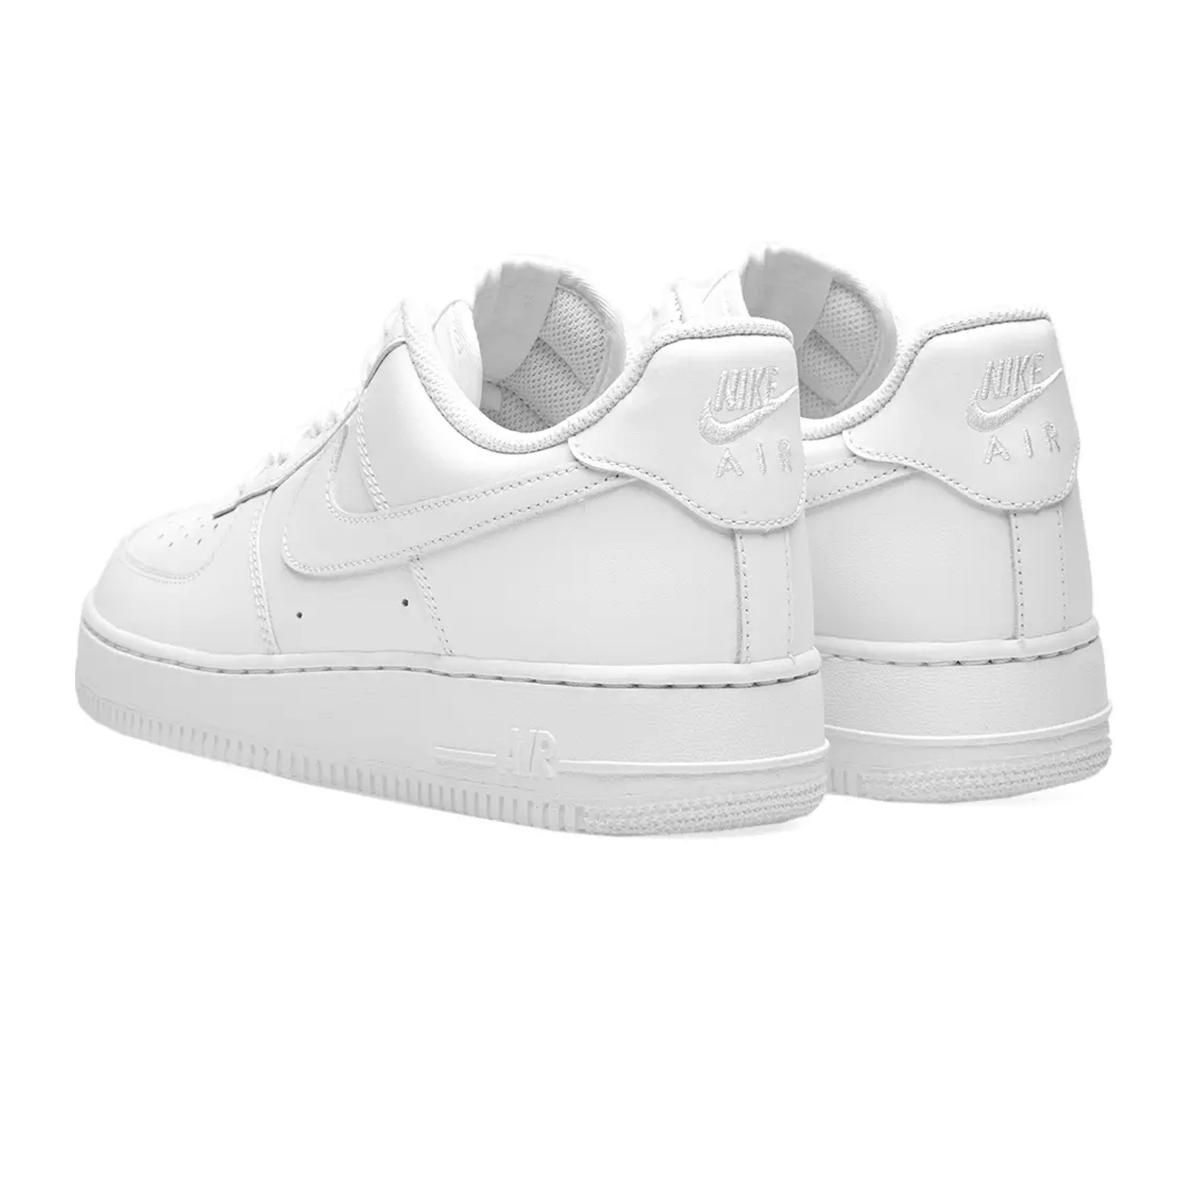 Scarpe Nike Air Force 1 '07 - Uomo 315122-111